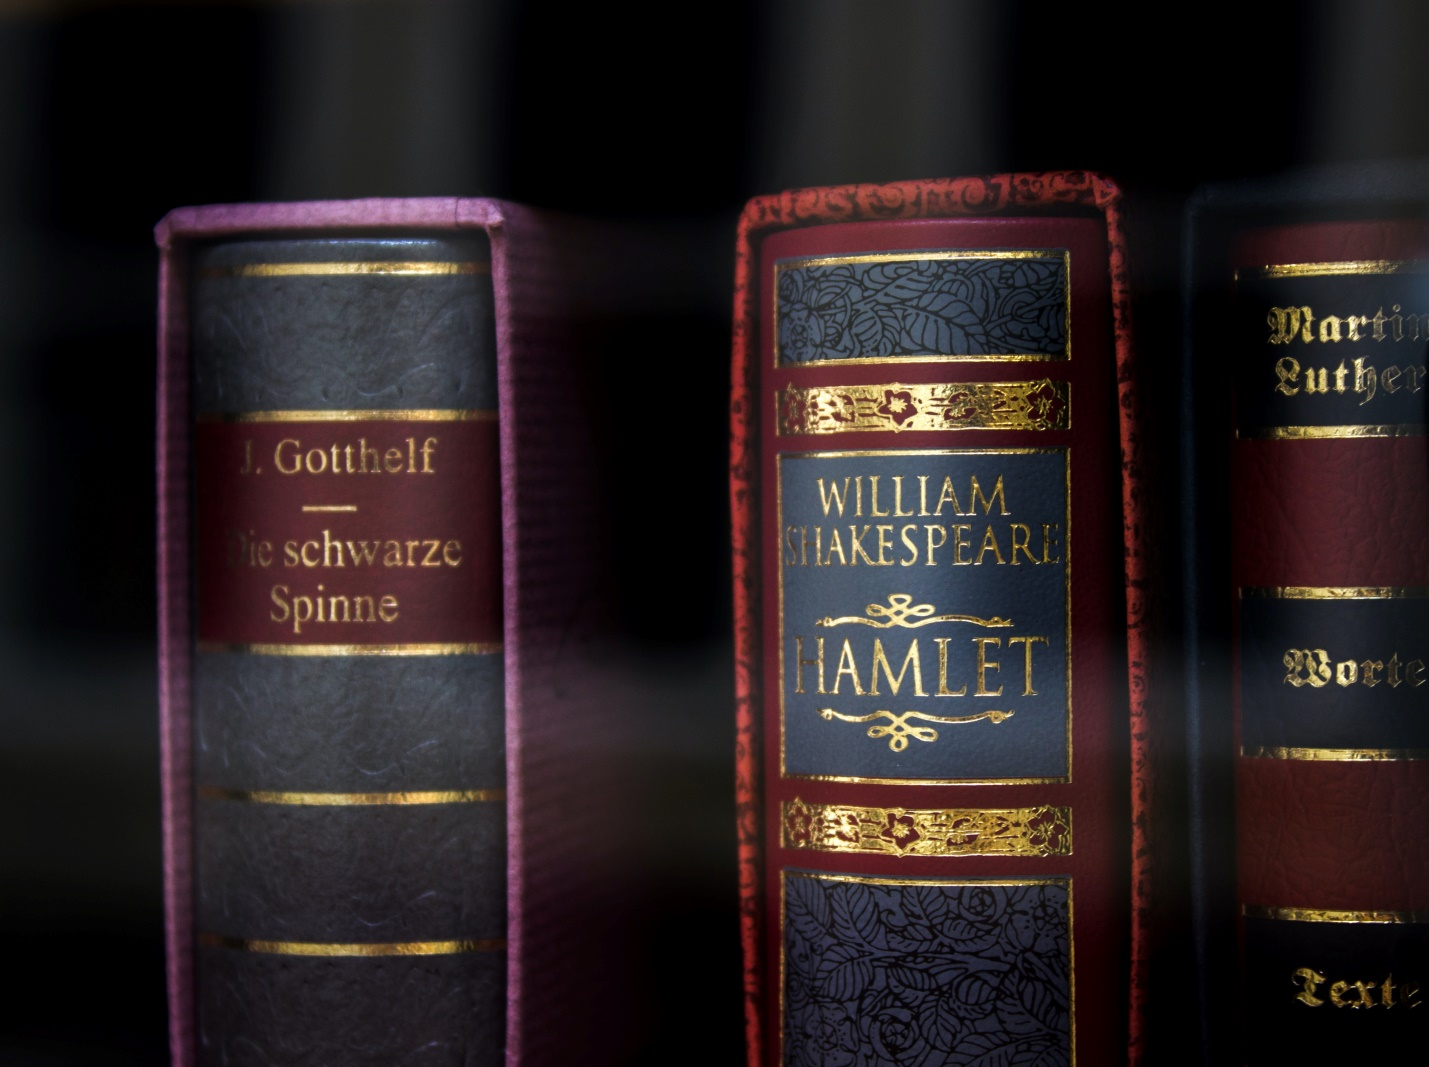 Read on and find out the origins of William Shakespeare!